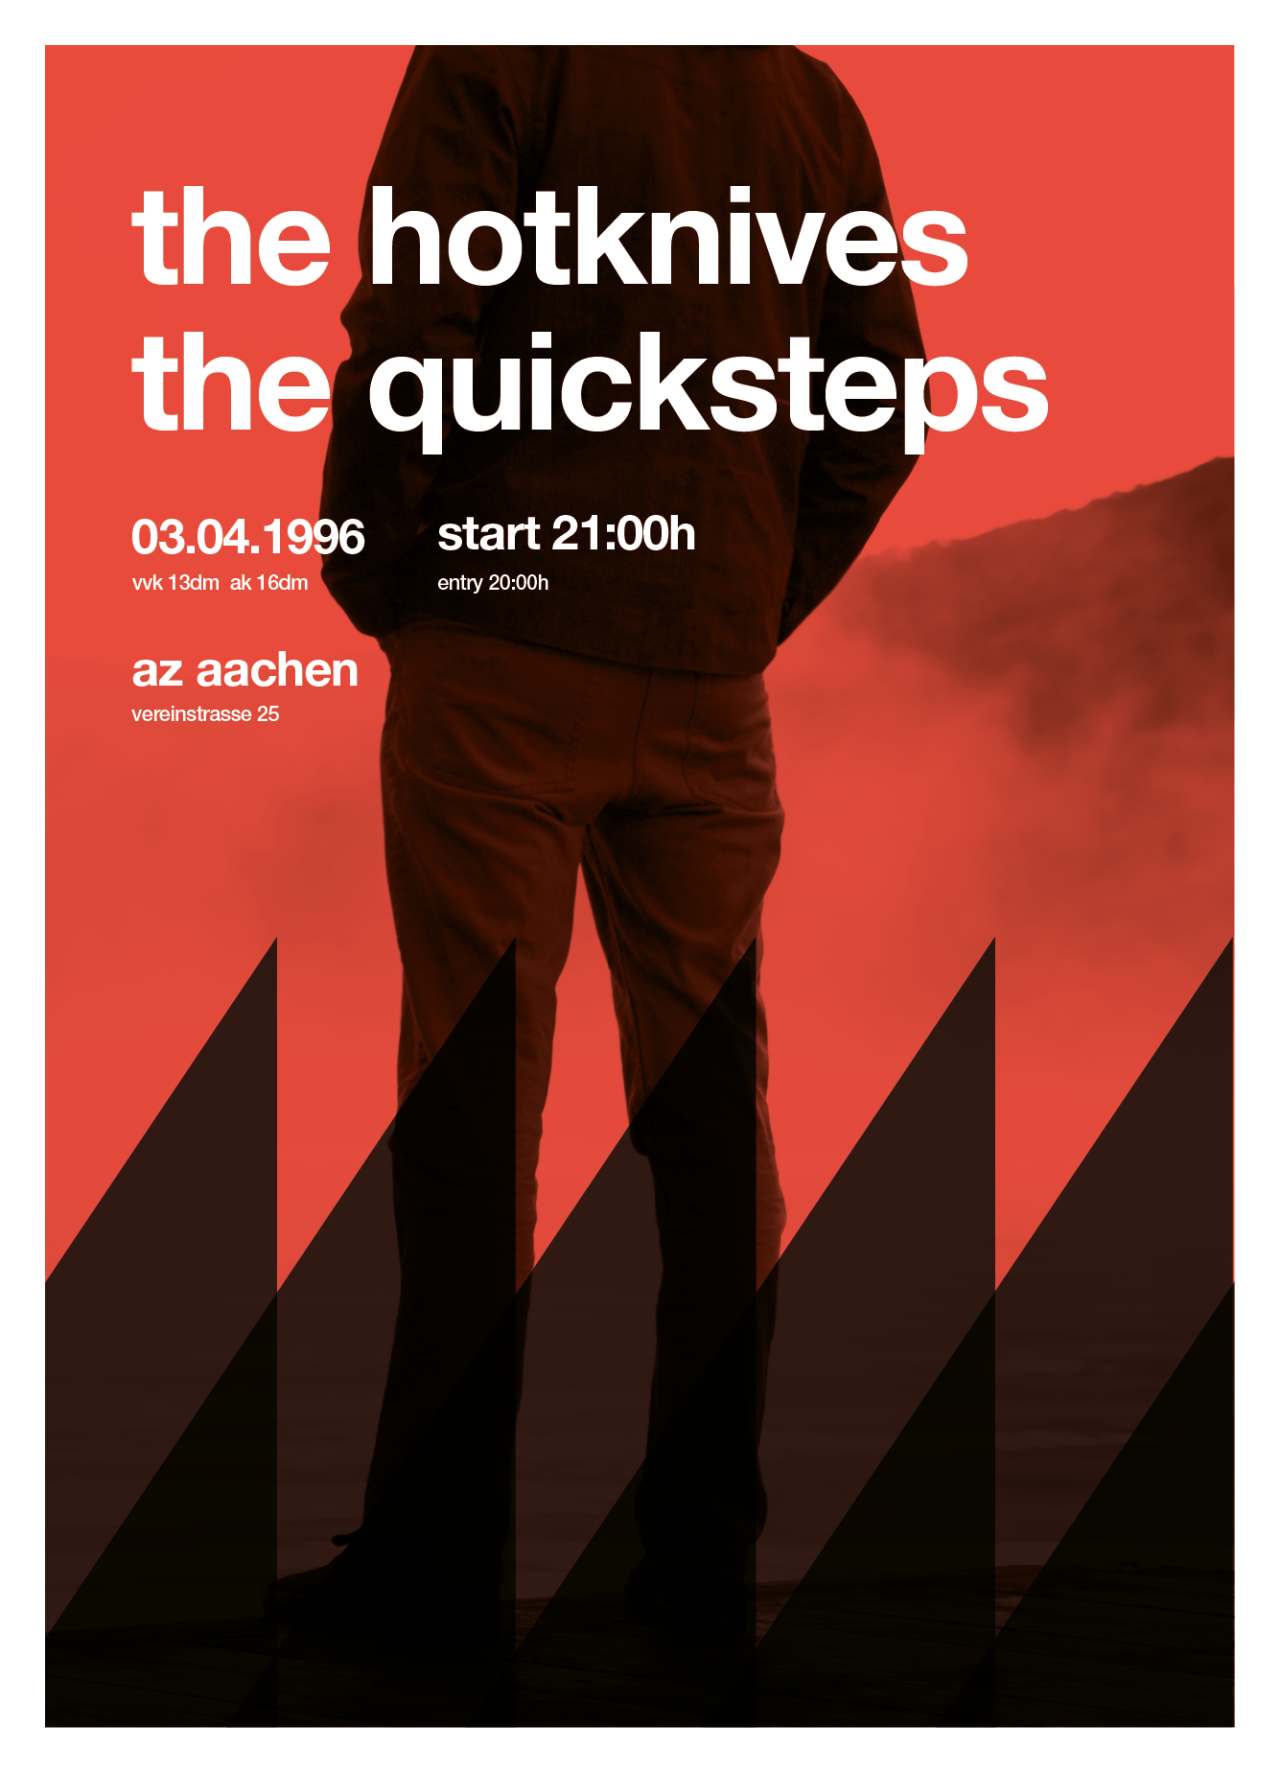 Design Aachen adventures in helvetica swiss design today the hotknives the